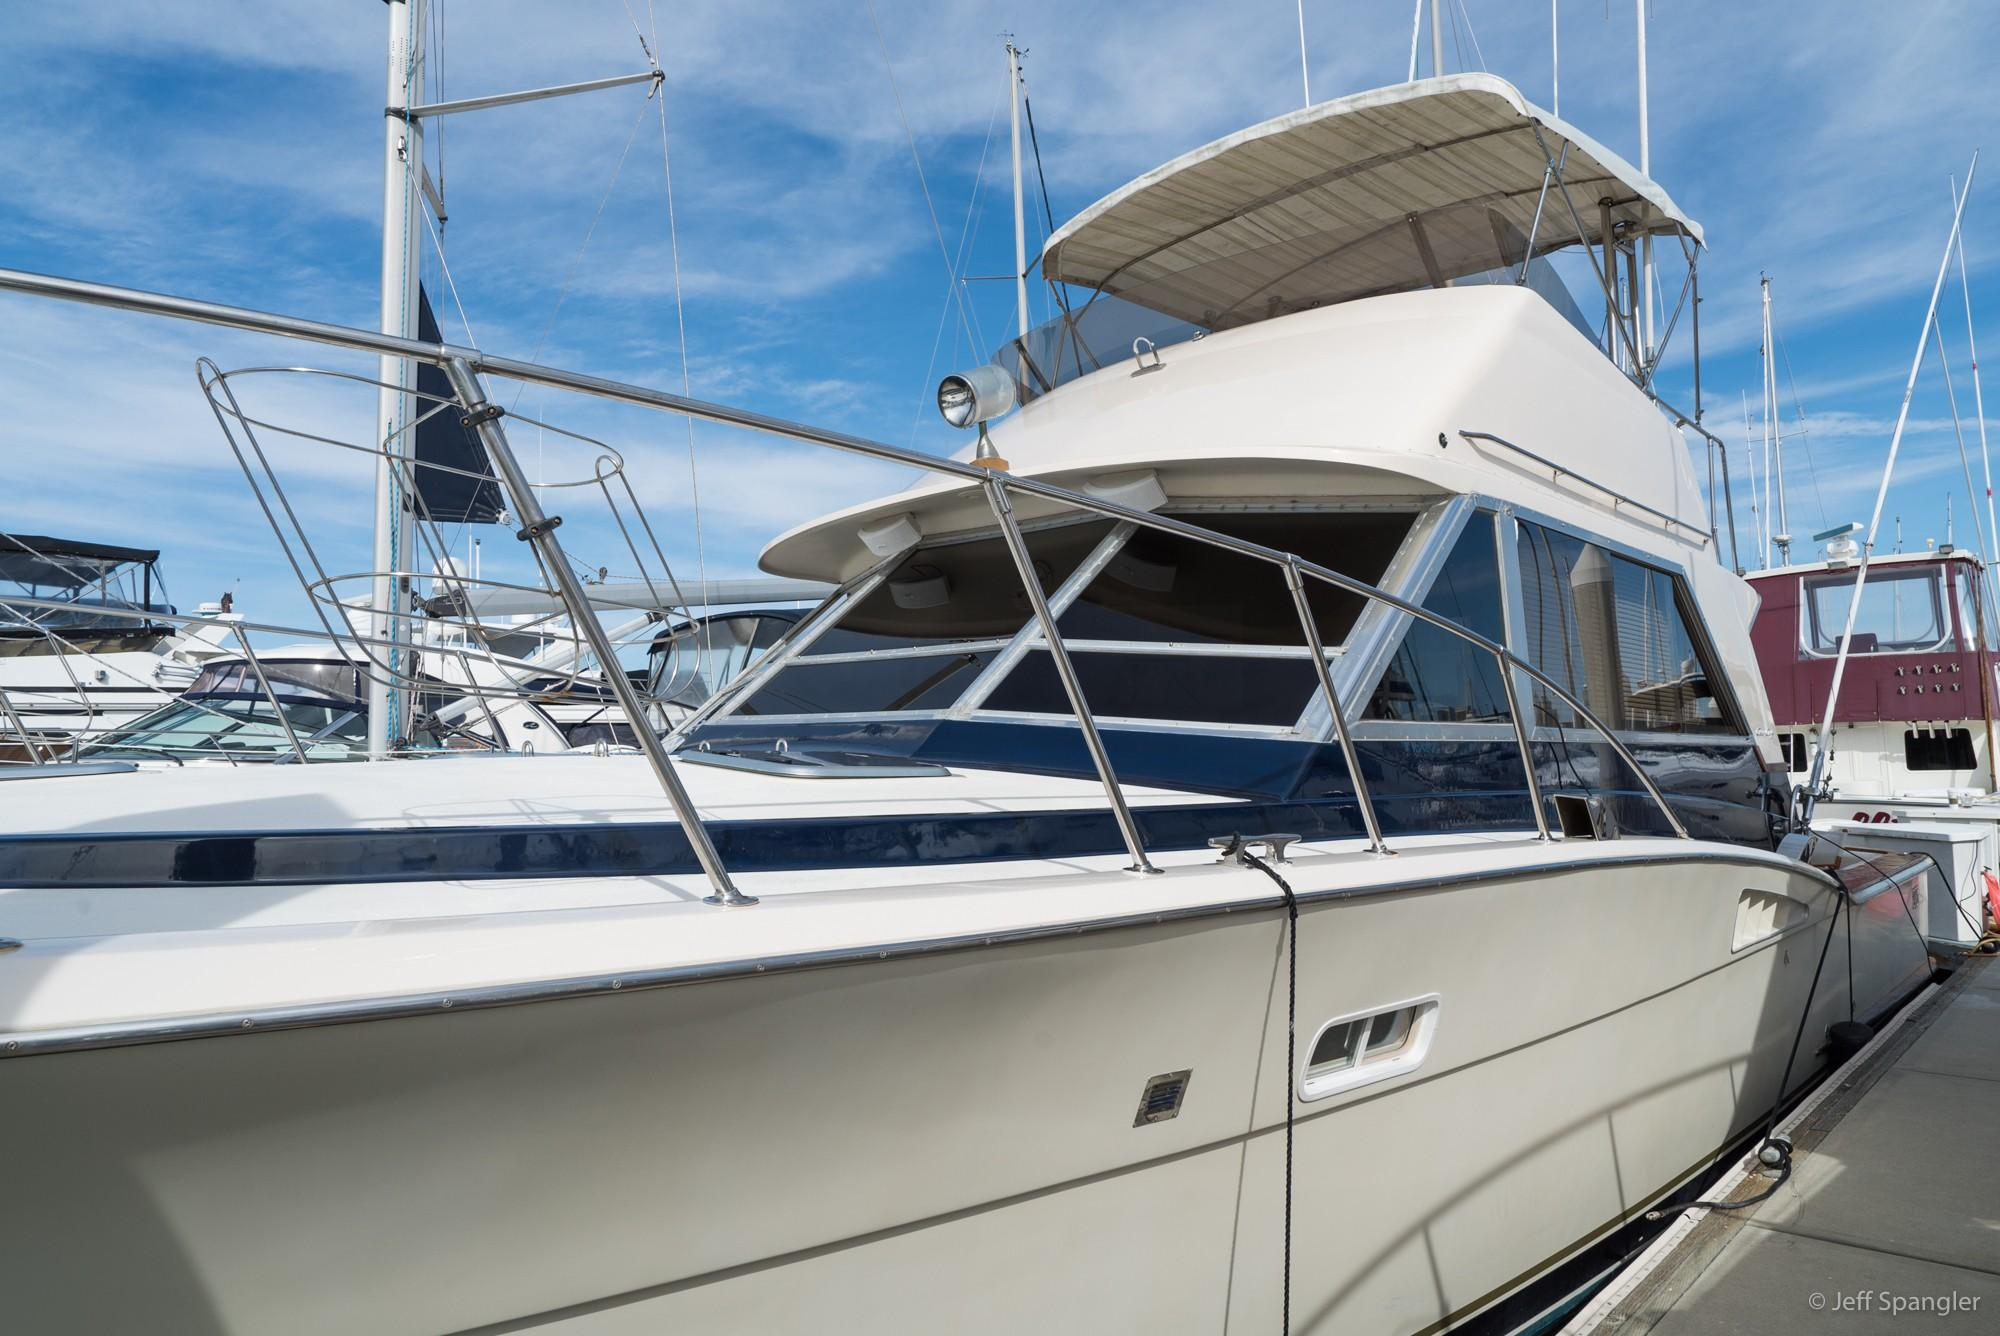 Picture Of:  42' Chris-Craft Convertible 1979Yacht For Sale   83